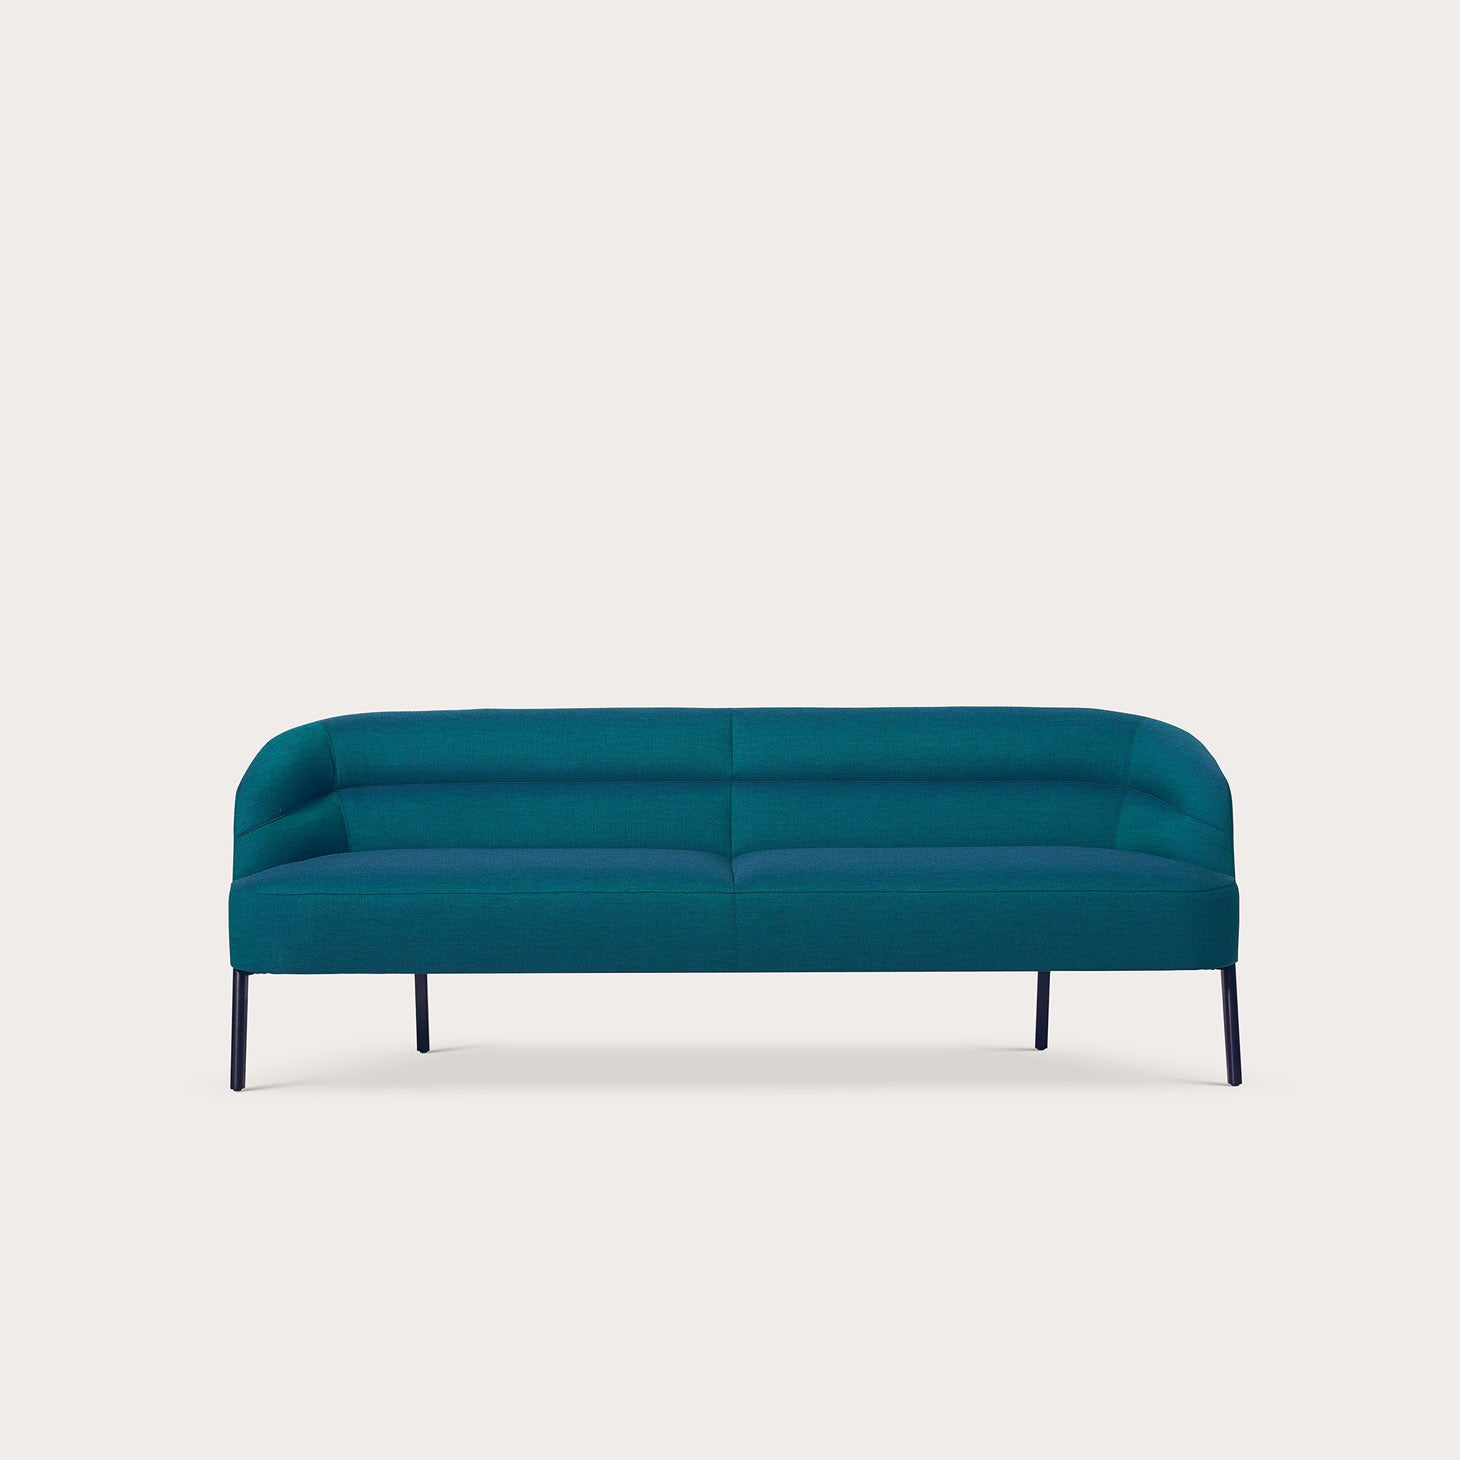 Odeon Seating Marco Dessi Designer Furniture Sku: 758-240-10105